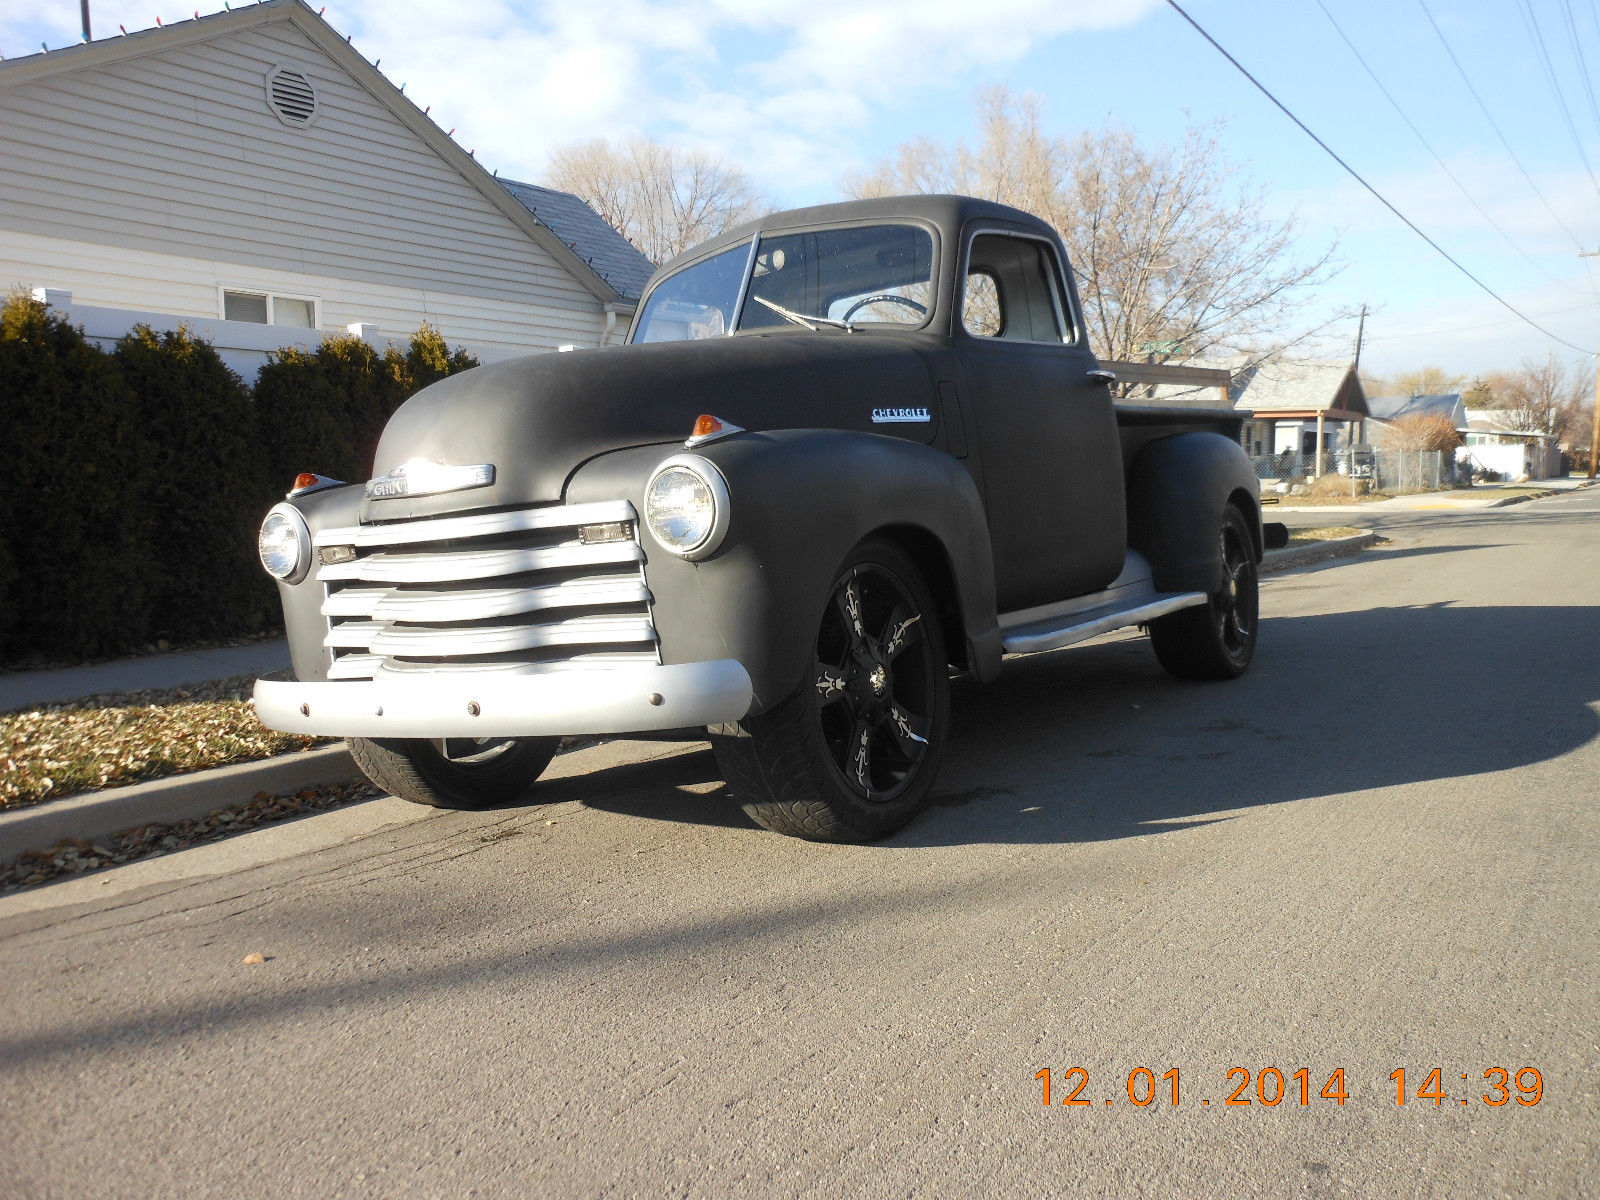 1948 1949 1950 1951 1952 1953 1954 Frame Off Restored Chevy 1 2 Truck Vin Location Ton